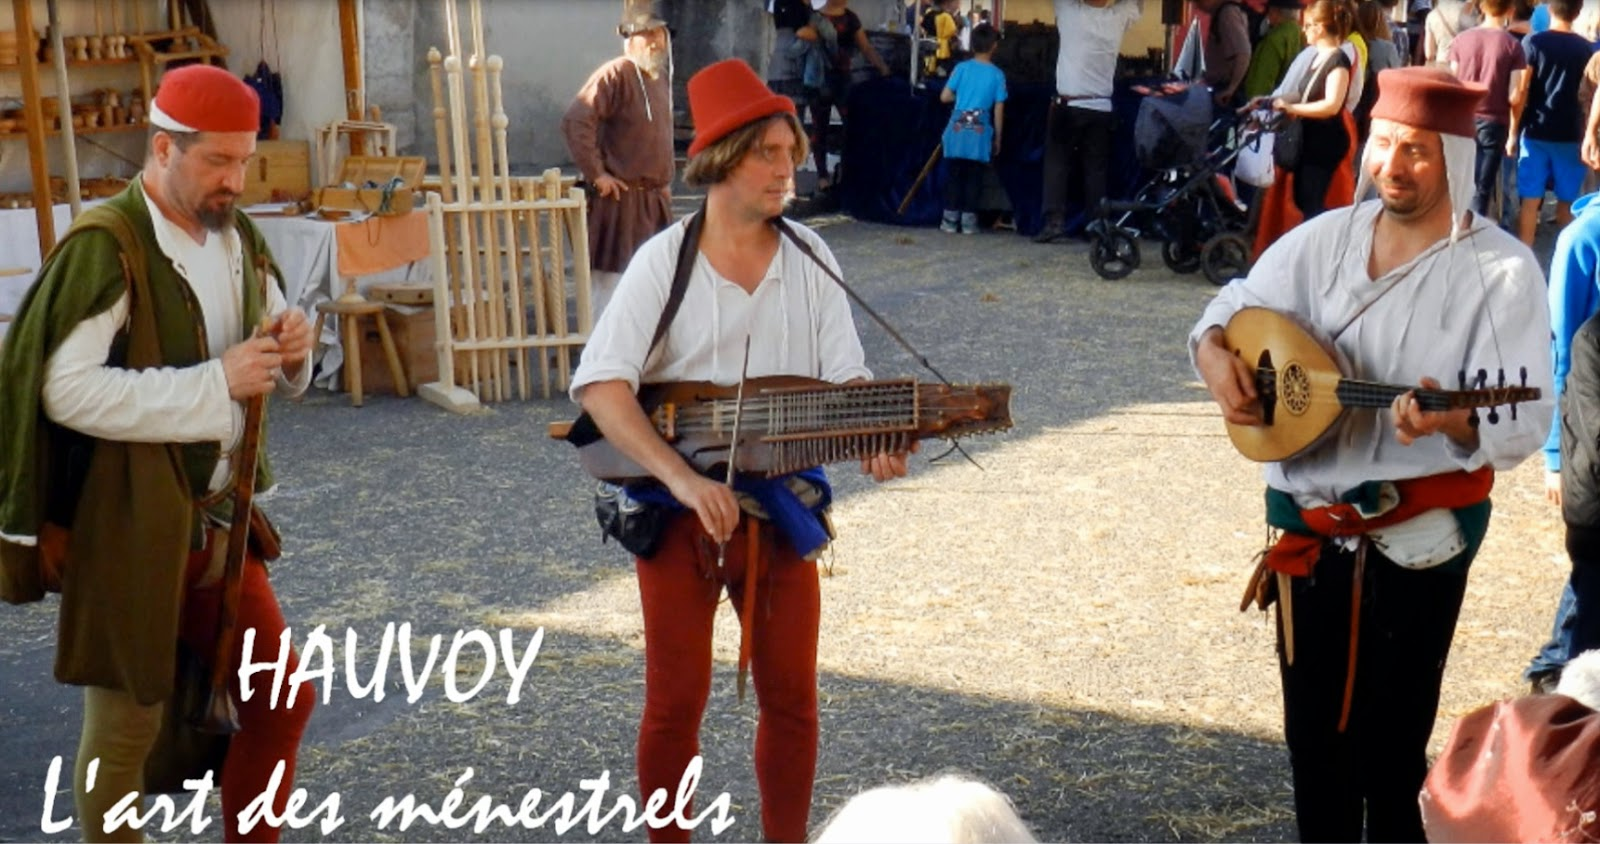 http://www.dailymotion.com/video/x1vrjnr_liverdun-journee-medievale-2014-menestrels-hauvoy_creation